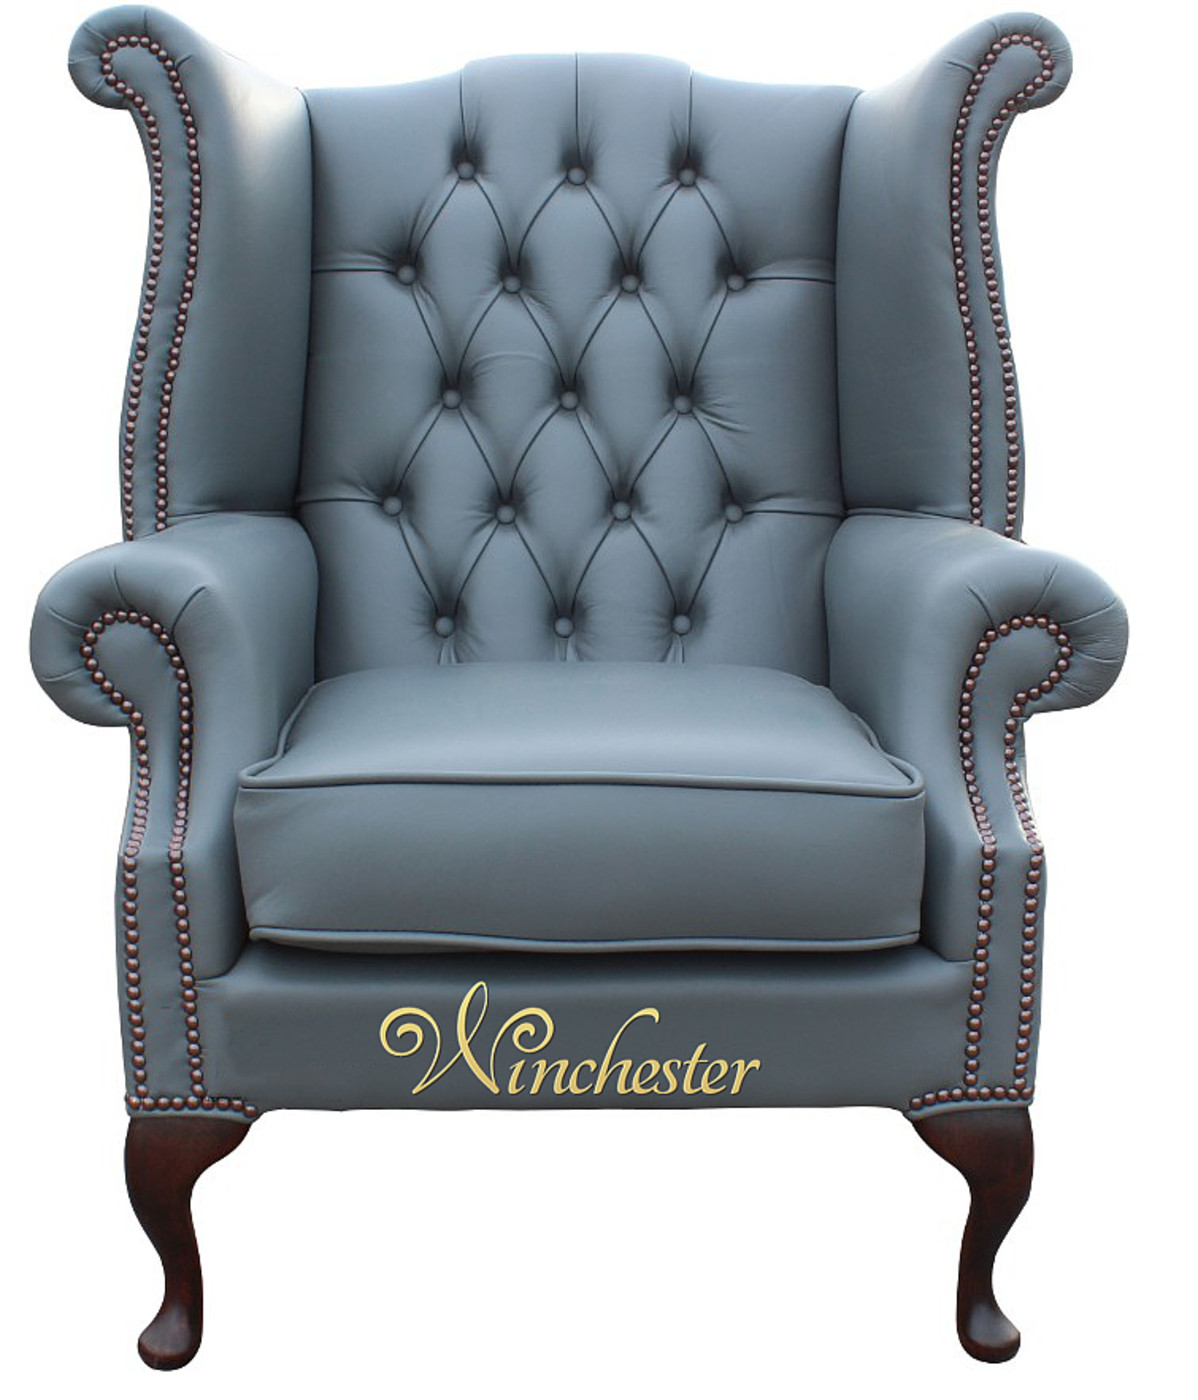 clean leather chair smell party tables and chairs chesterfield queen anne high back wing soft vele iron grey leather, sofas ...